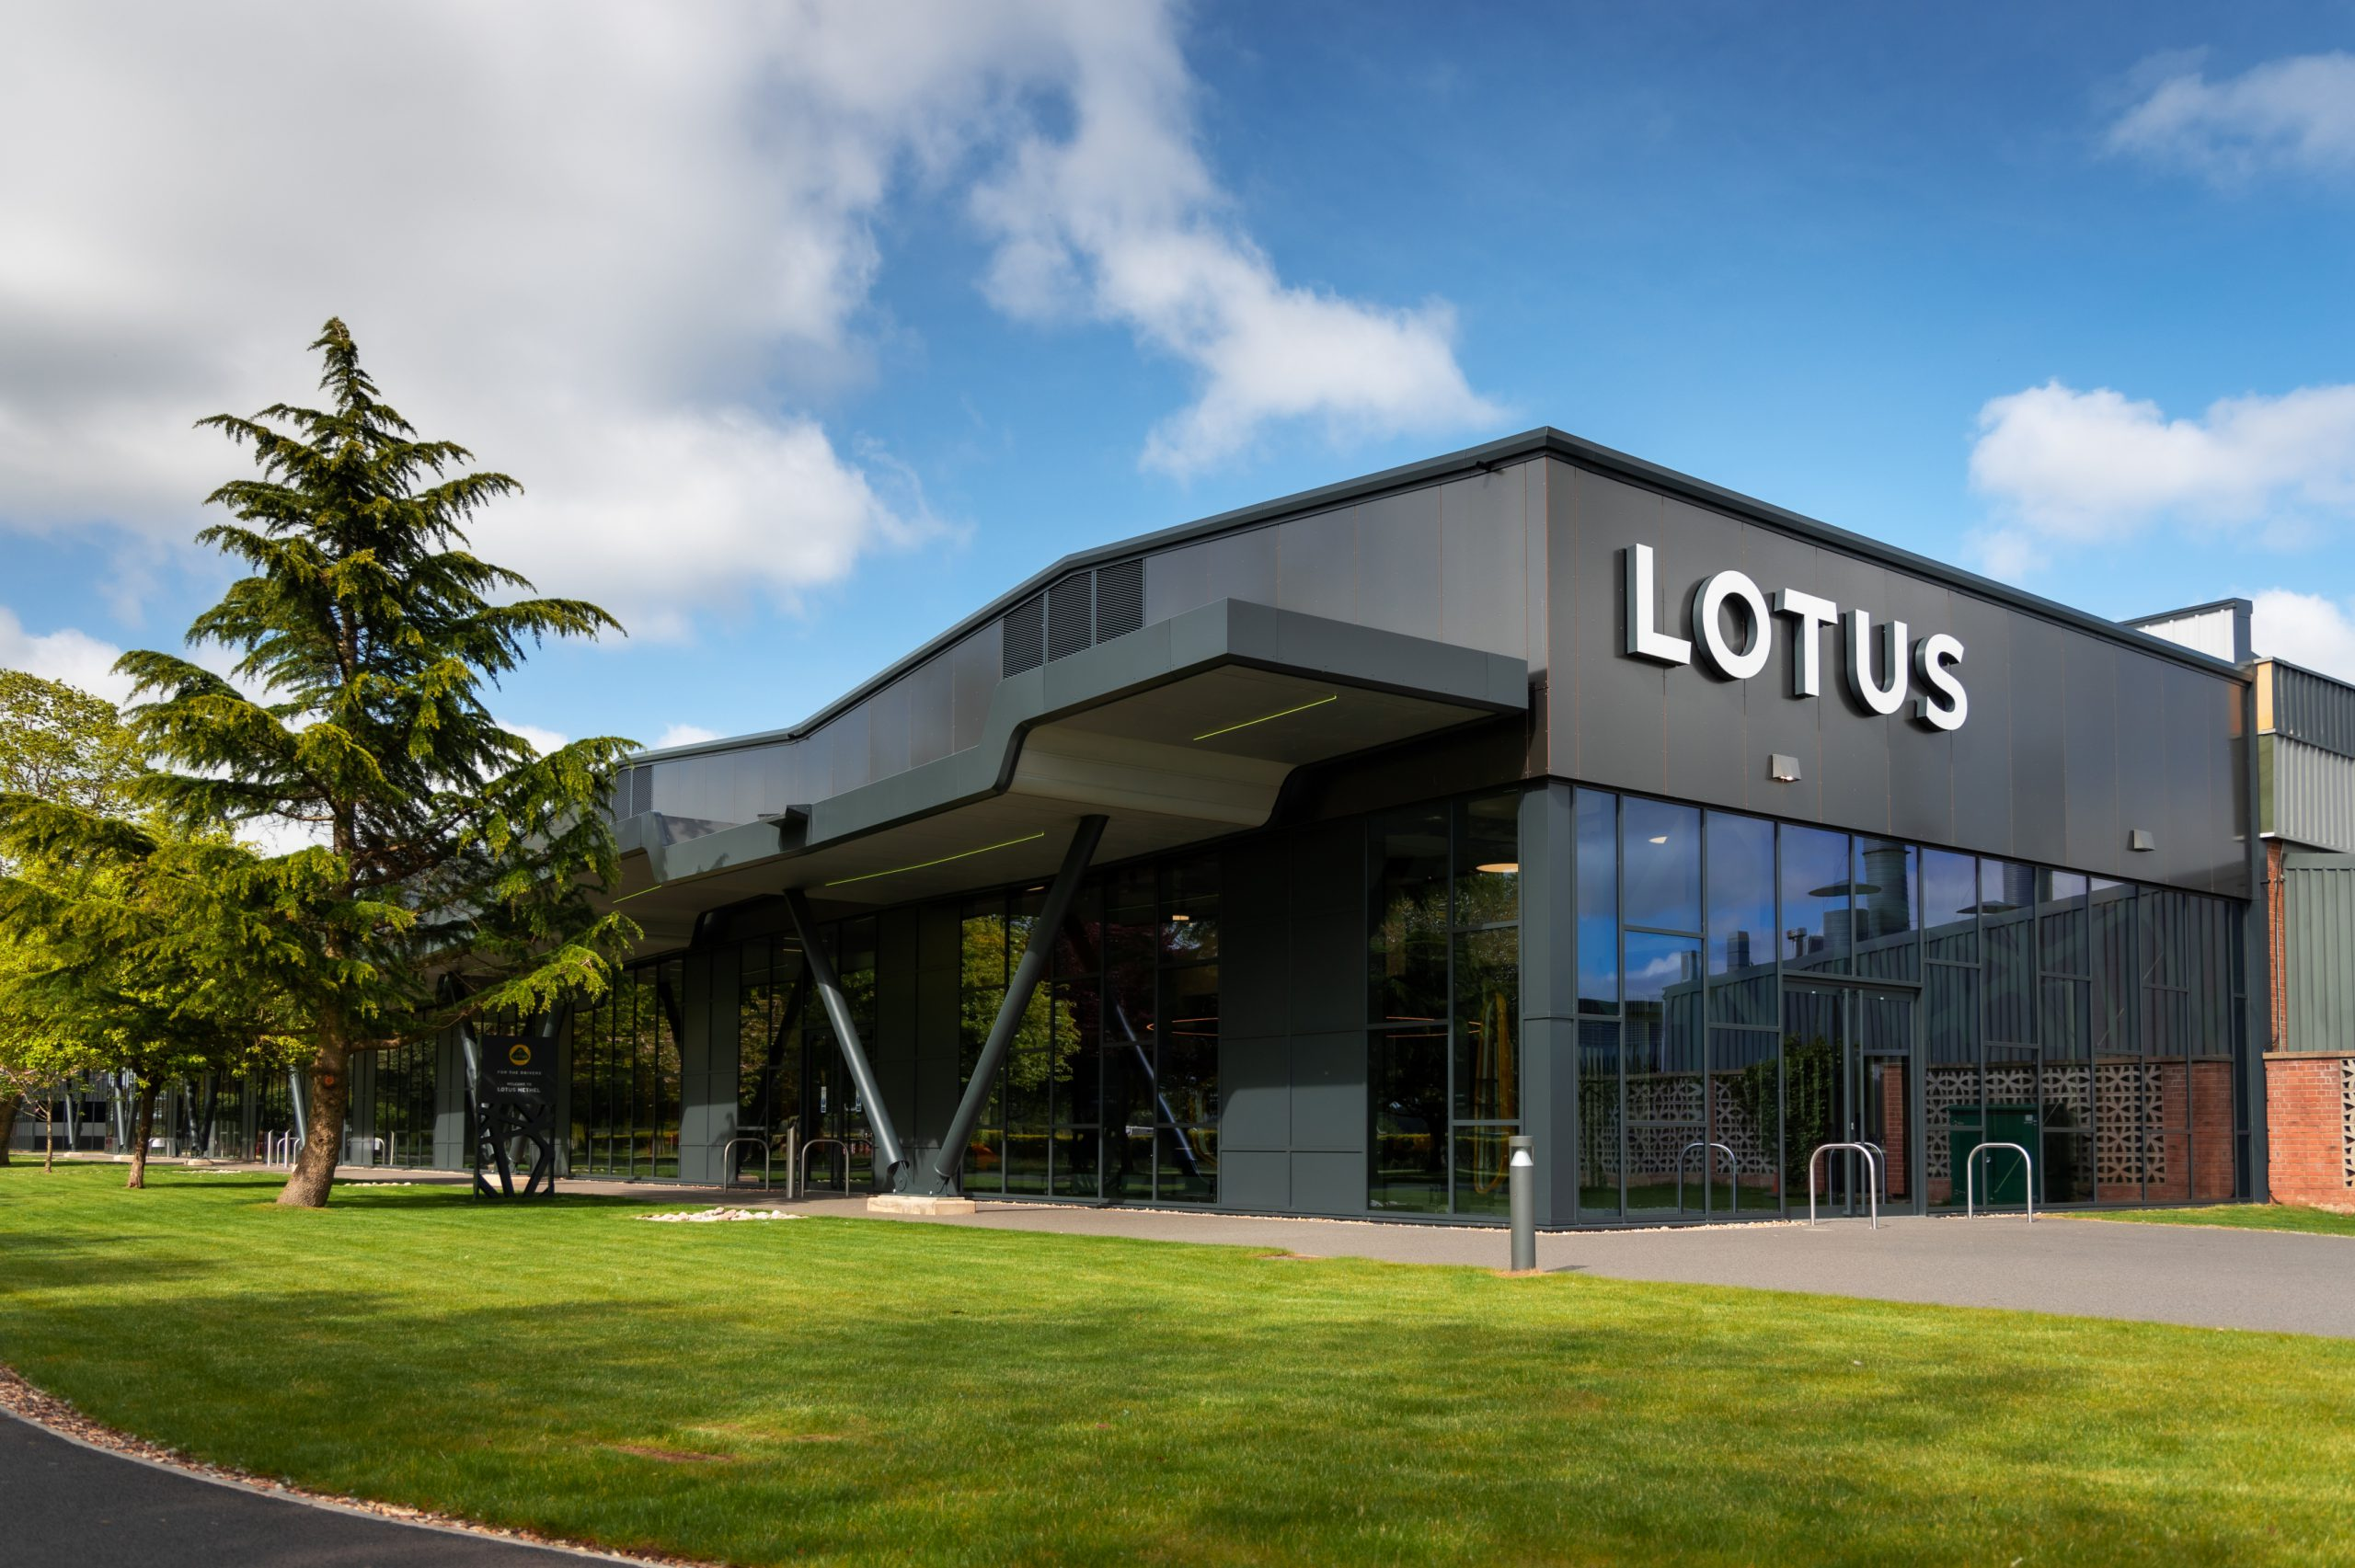 All-new Lotus Emira pre-production commences following £100million investment in UK facilities